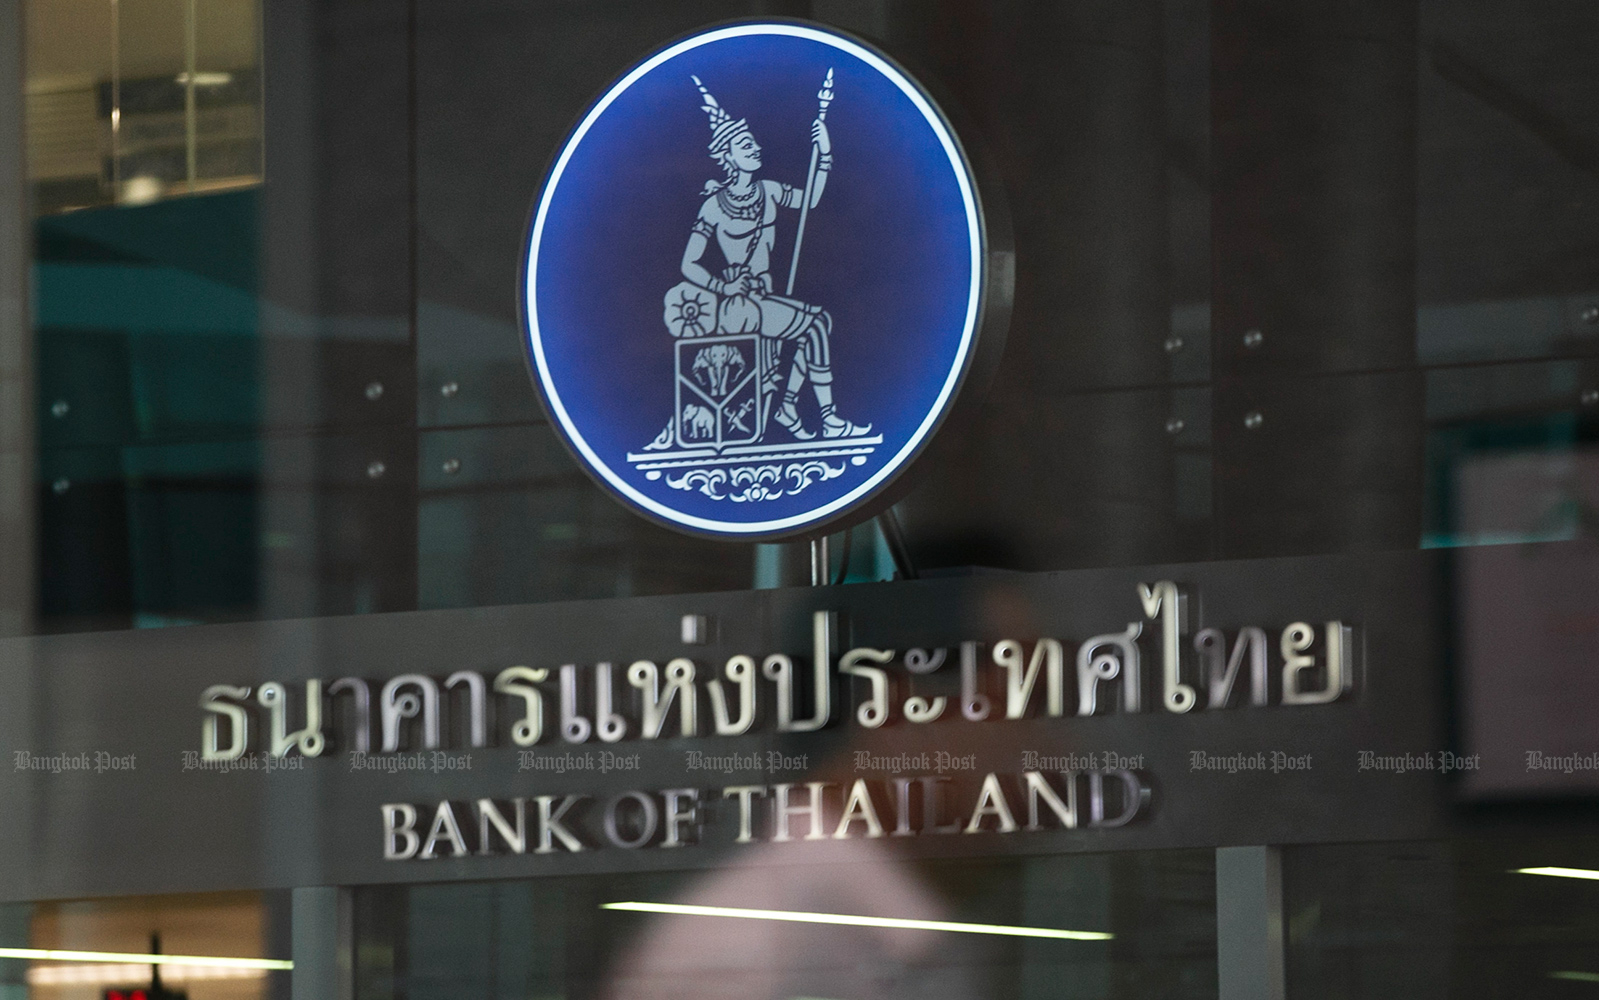 The Bank of Thailand is fixed on preserving monetary policy space to address possible future risks, according to the Sept 25 meeting minutes. (Bangkok Post photo)